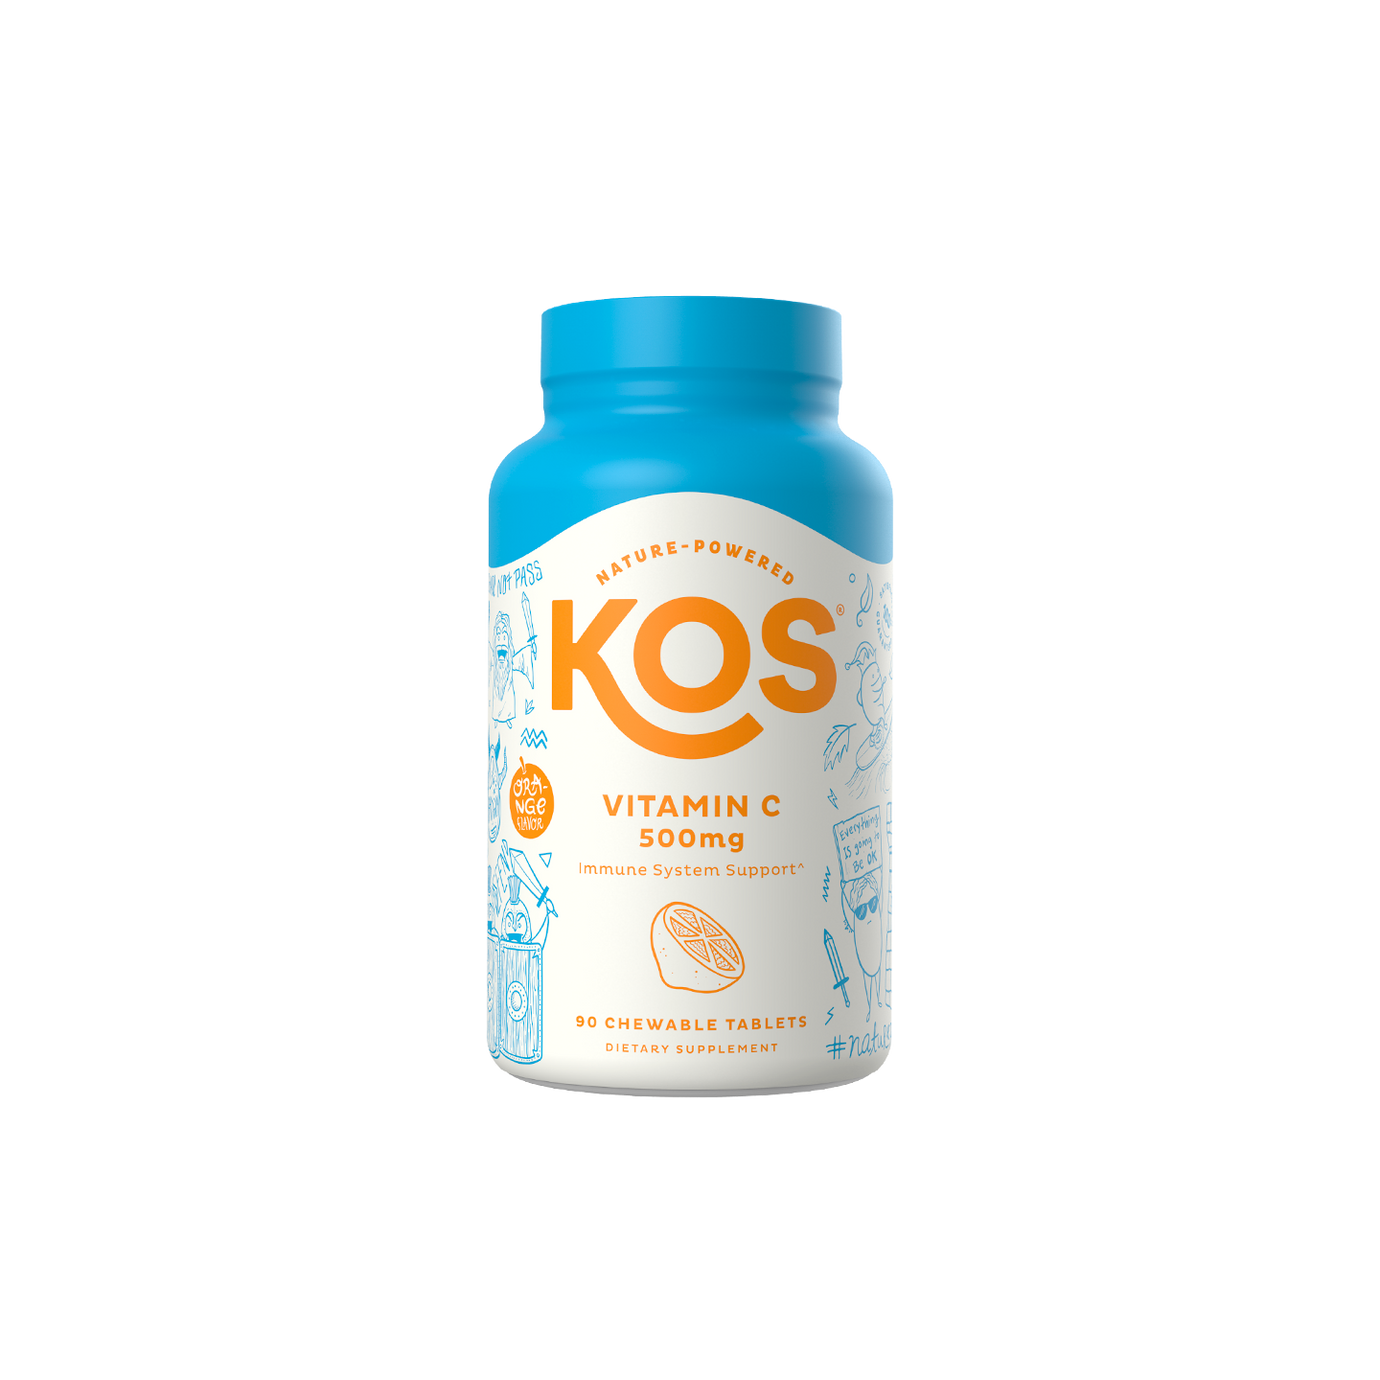 KOS Vitamin C 500mg Chewable Tablets